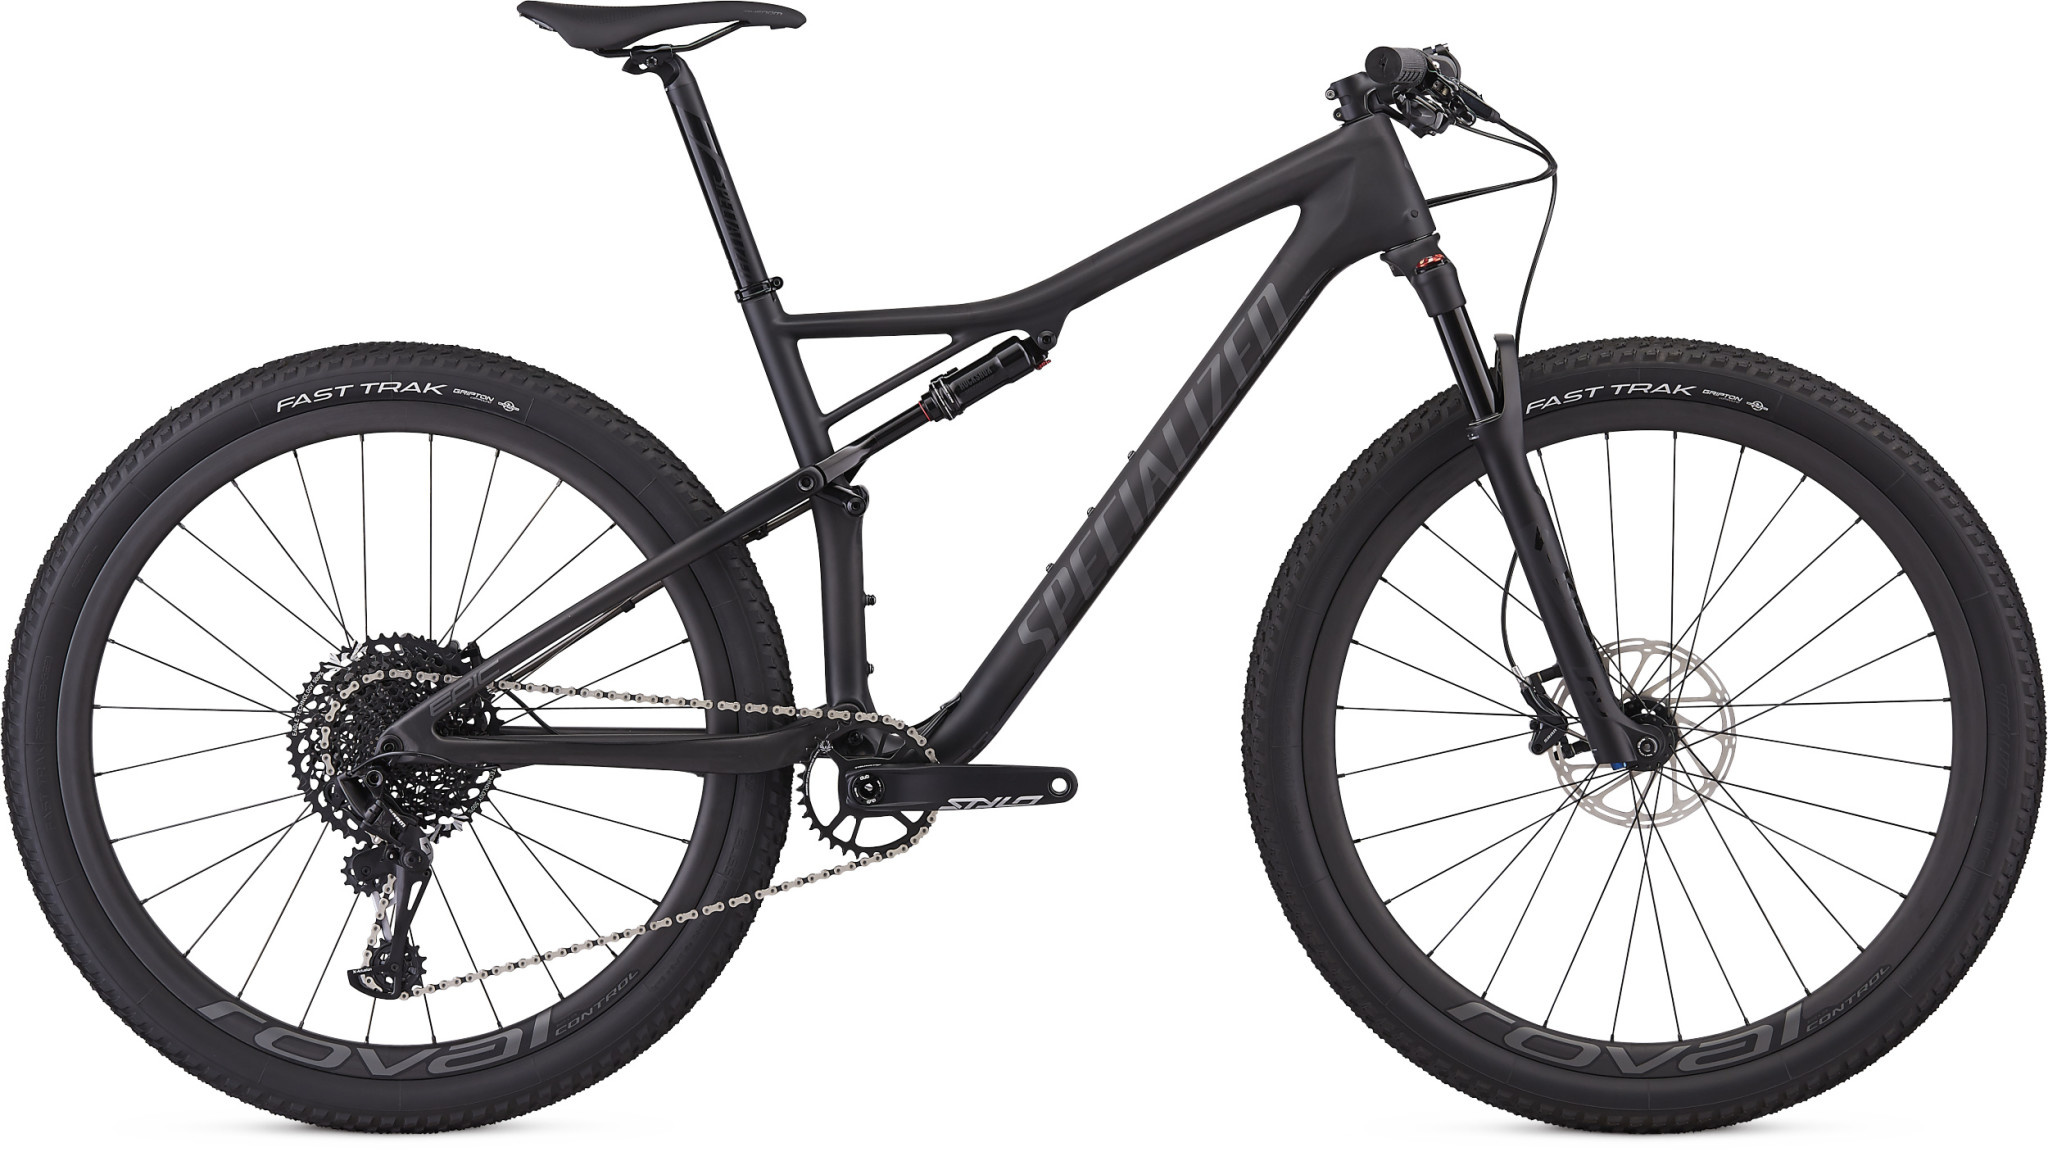 2019 Epic Expert Carbon ***Lage Only - Last One!